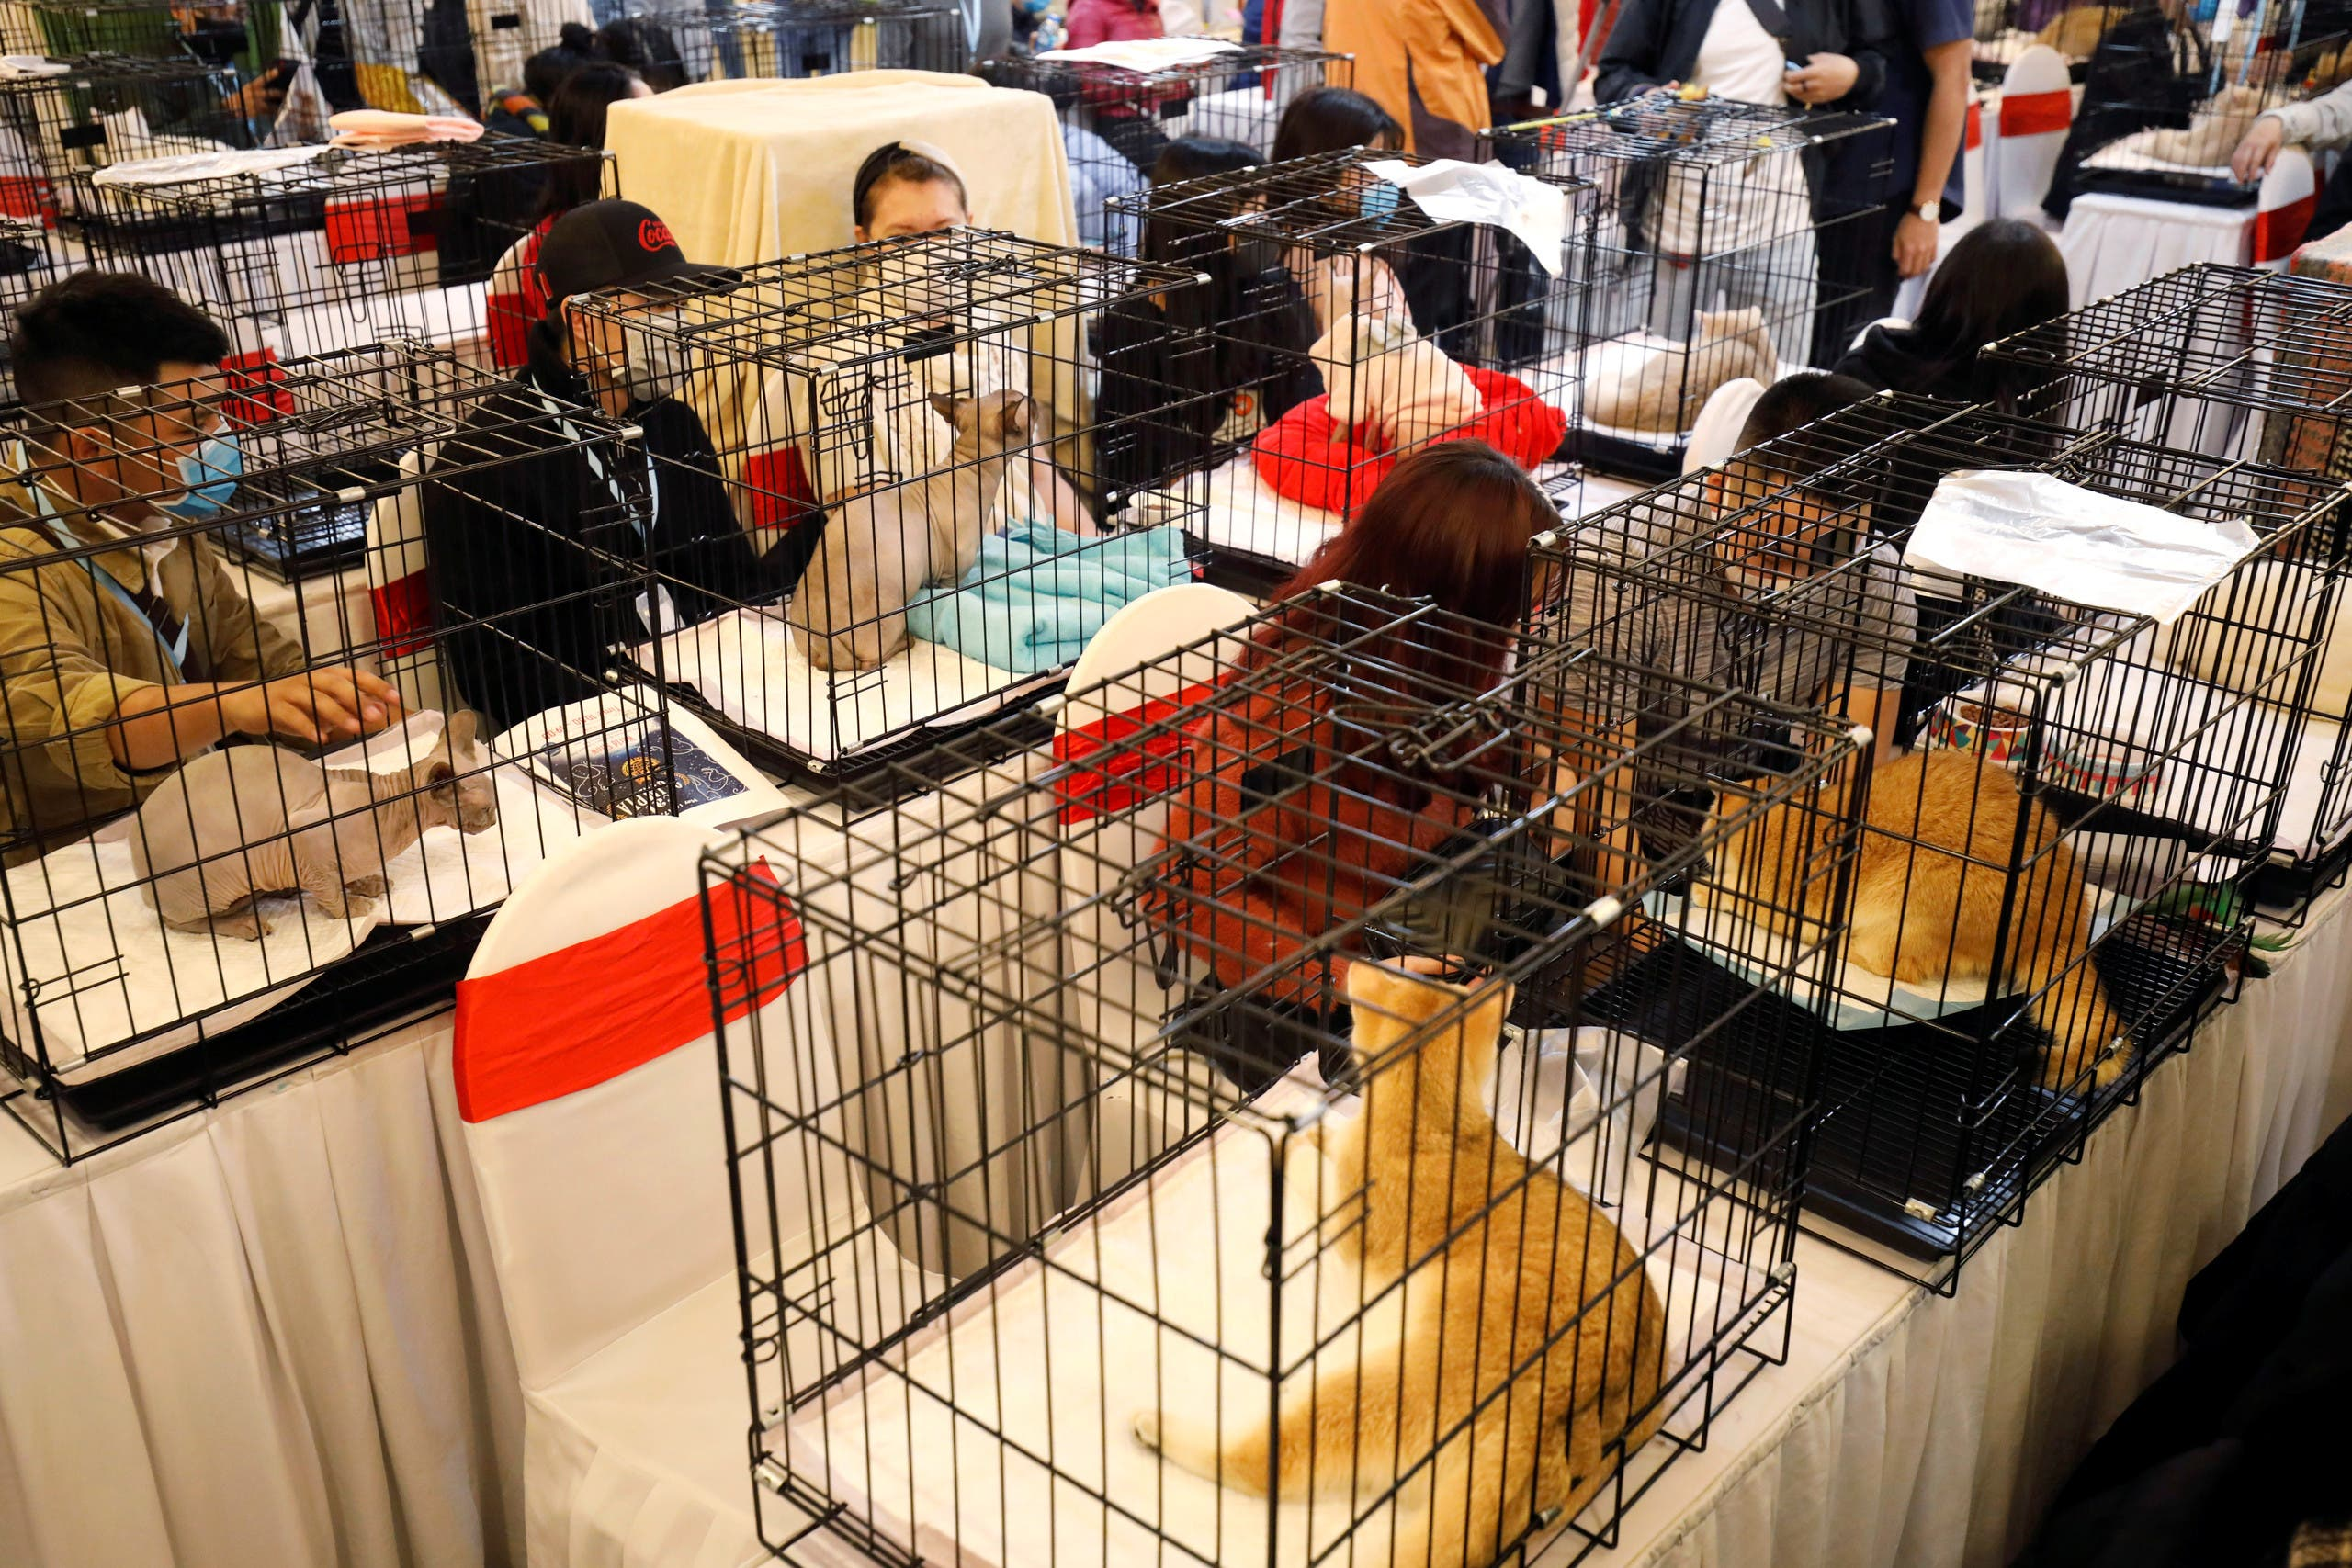 Cats are seen on cages during the Vietnam's first cat show in Hanoi, Vietnam February 16, 2020. REUTERS